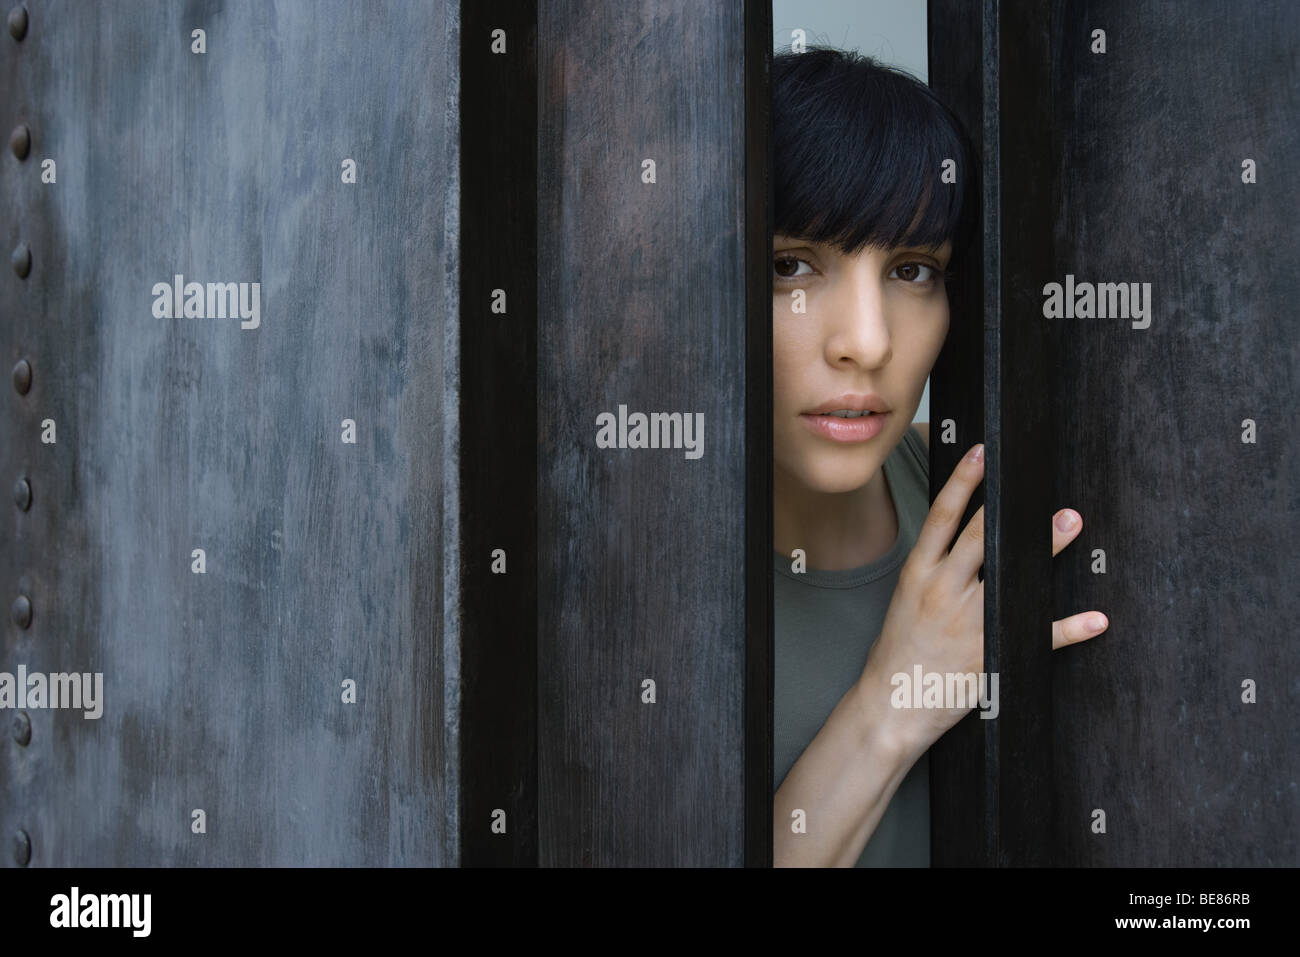 Woman opening door, looking out at camera - Stock Image